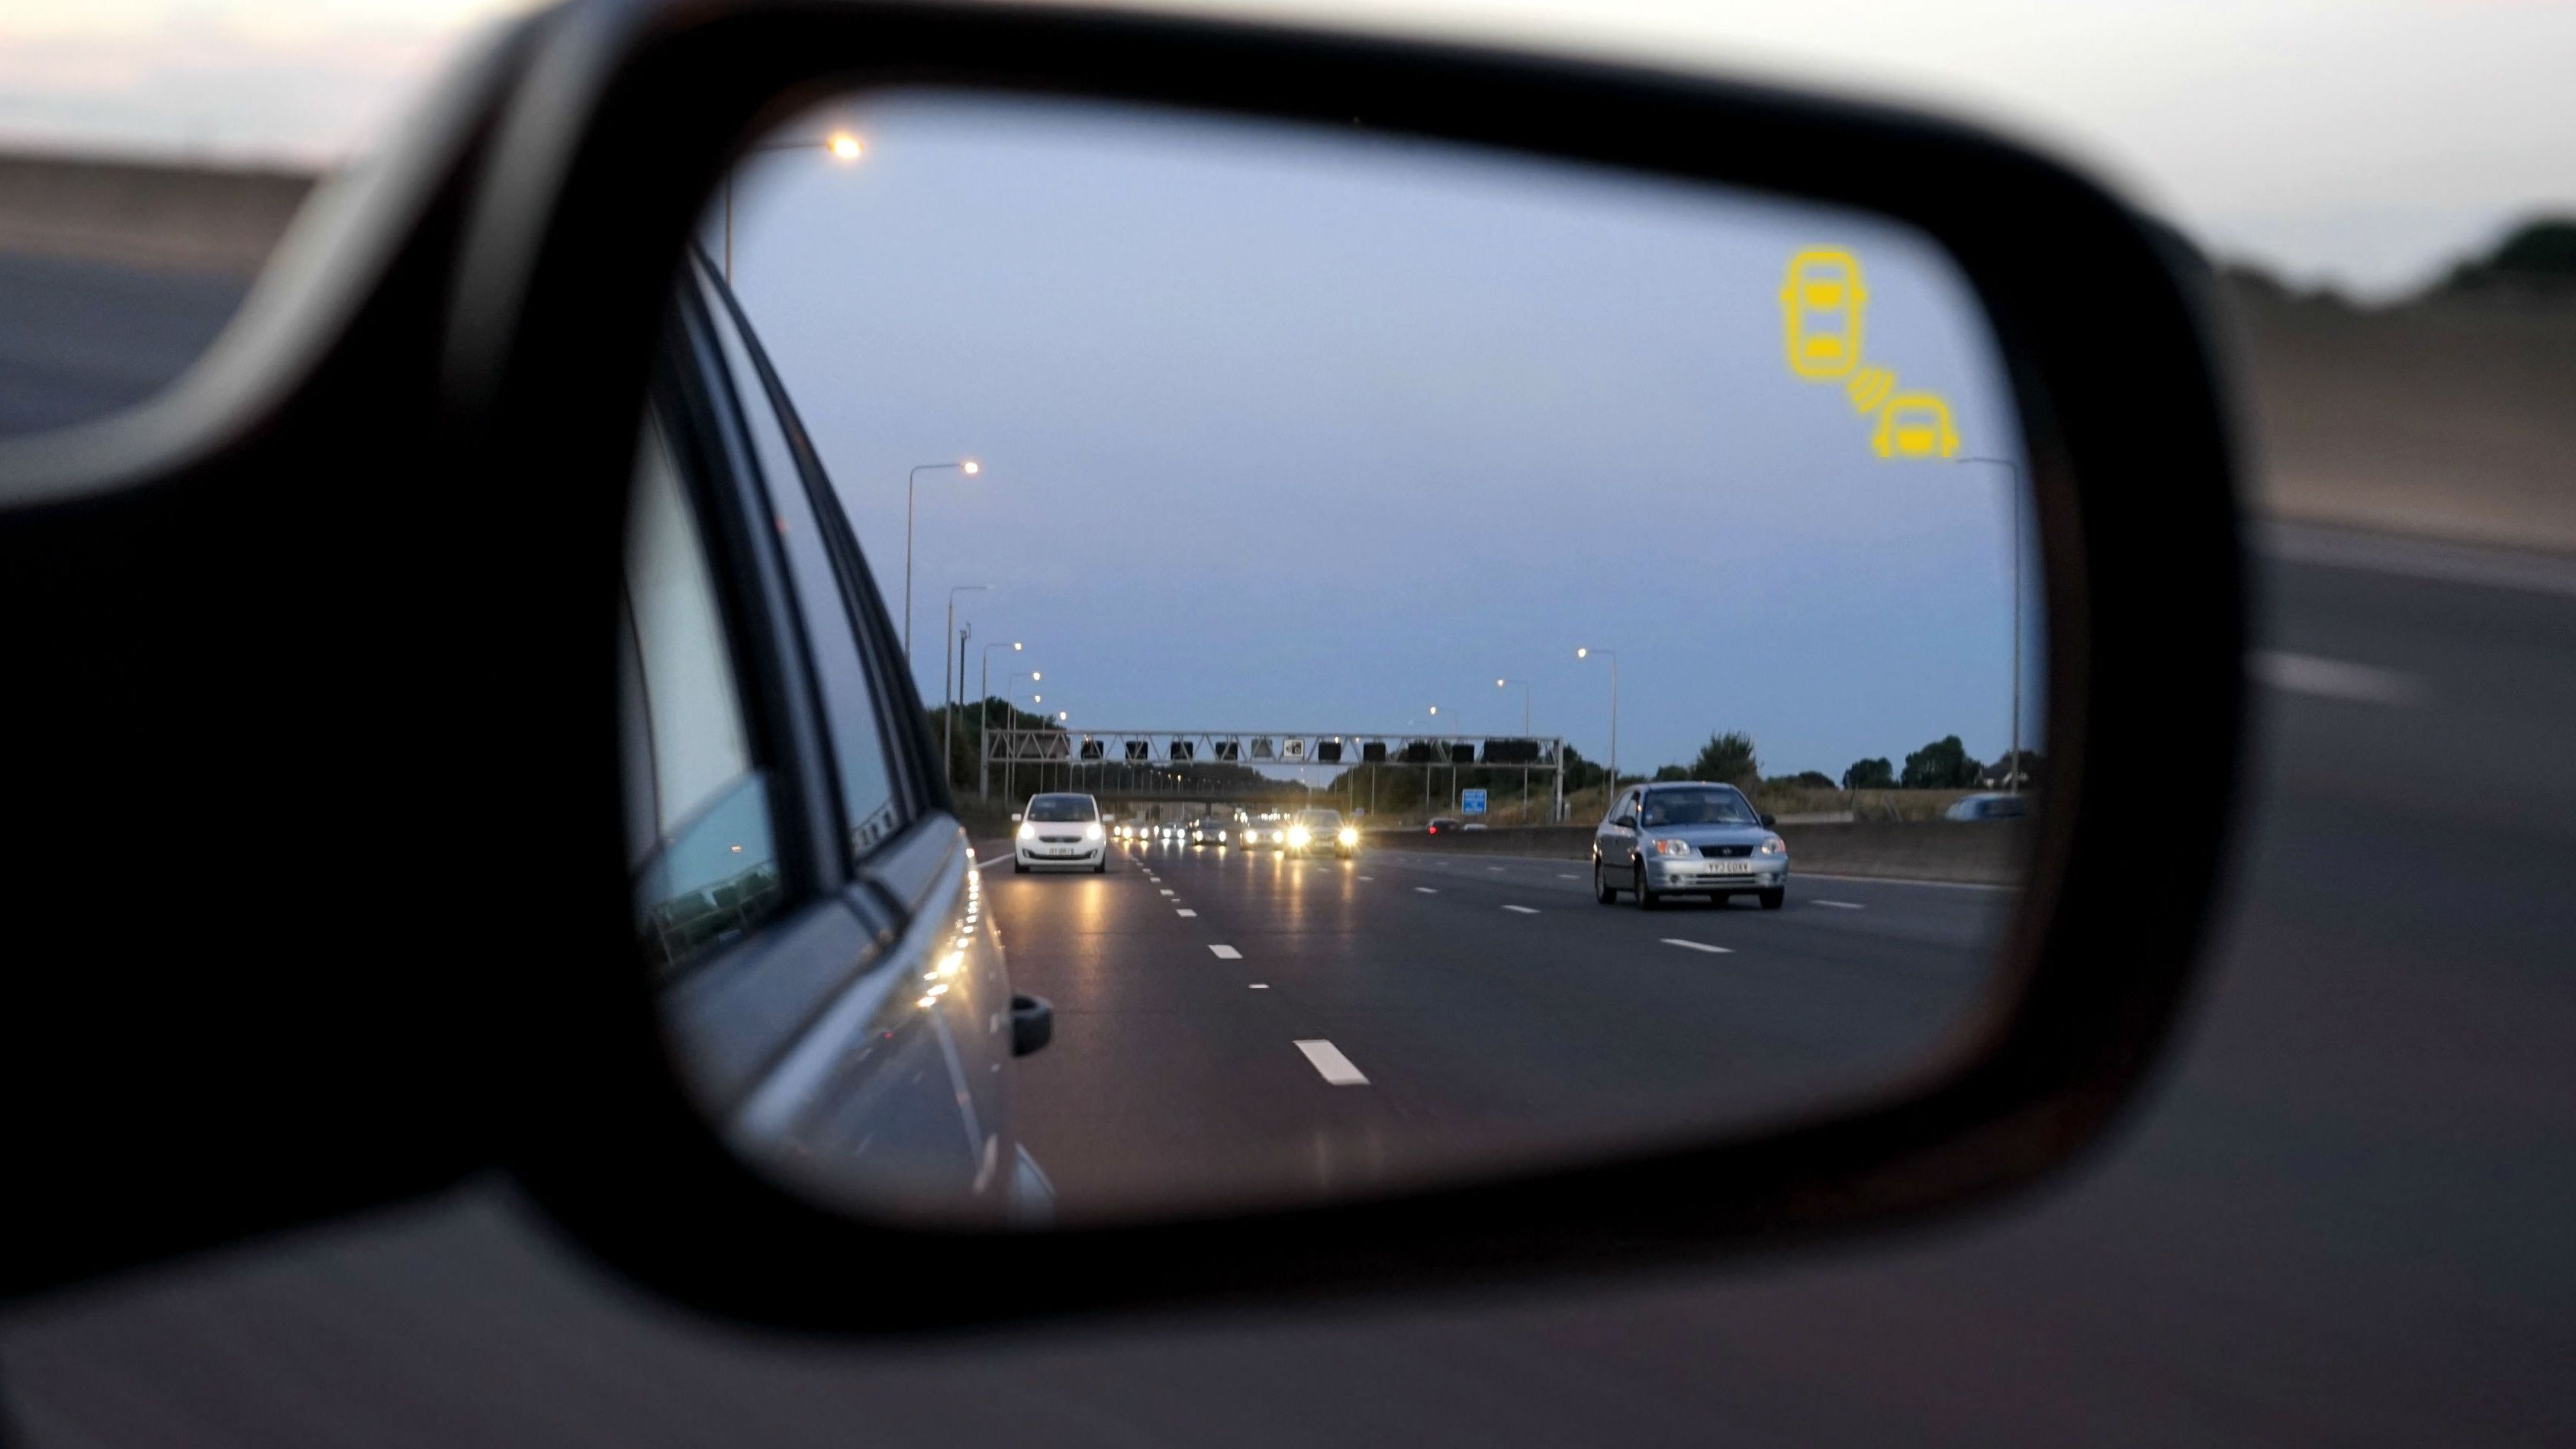 Blind Spot Detection And Warning Systems